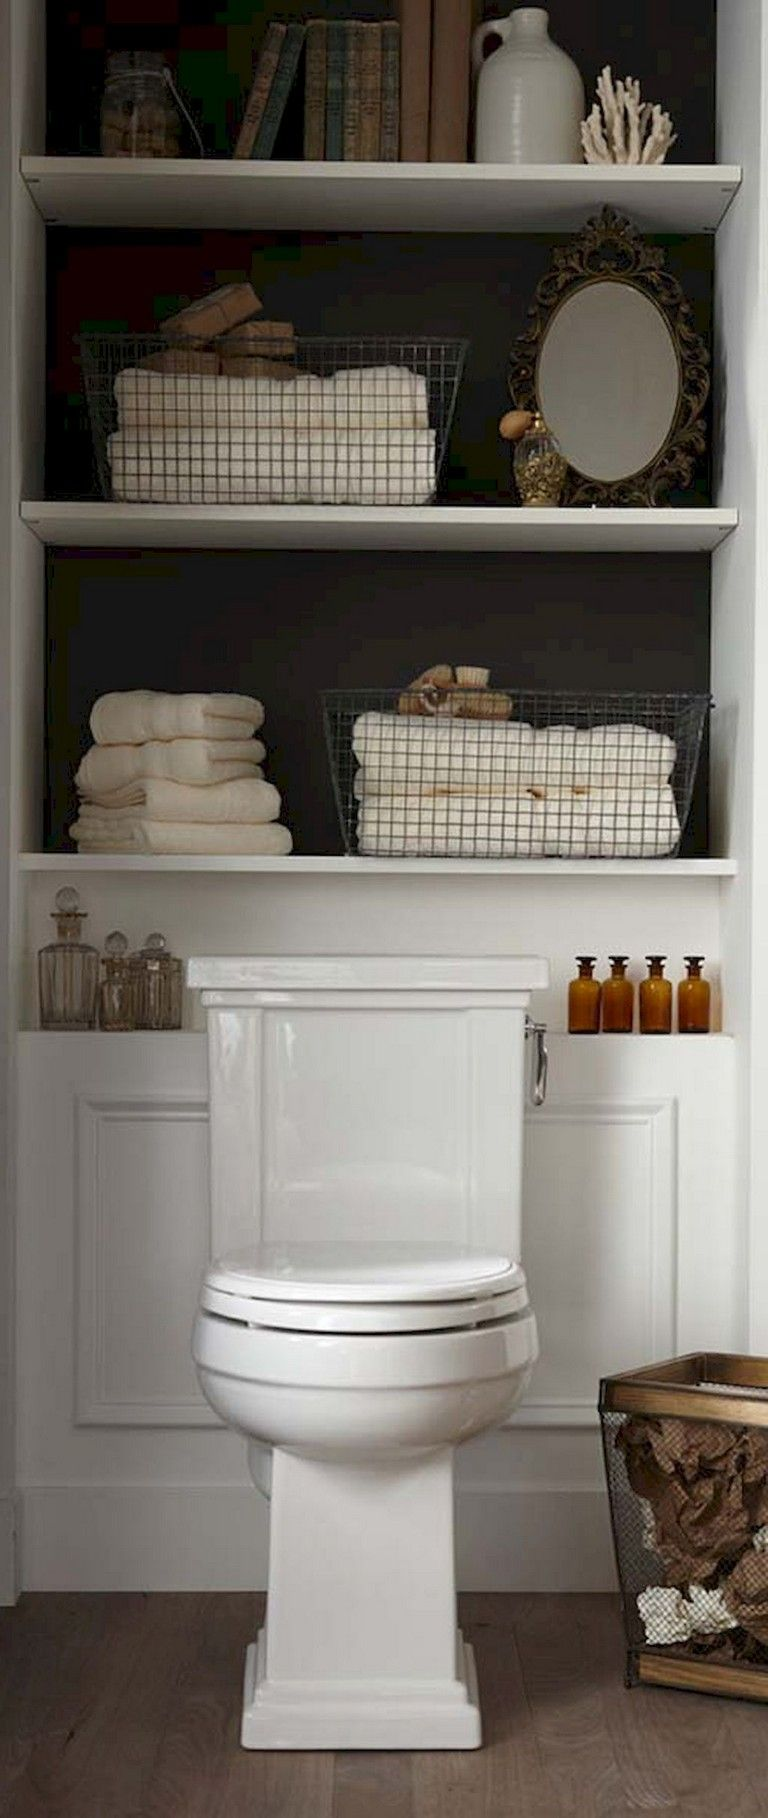 50 exciting tips and tricks bathroom storage shelves